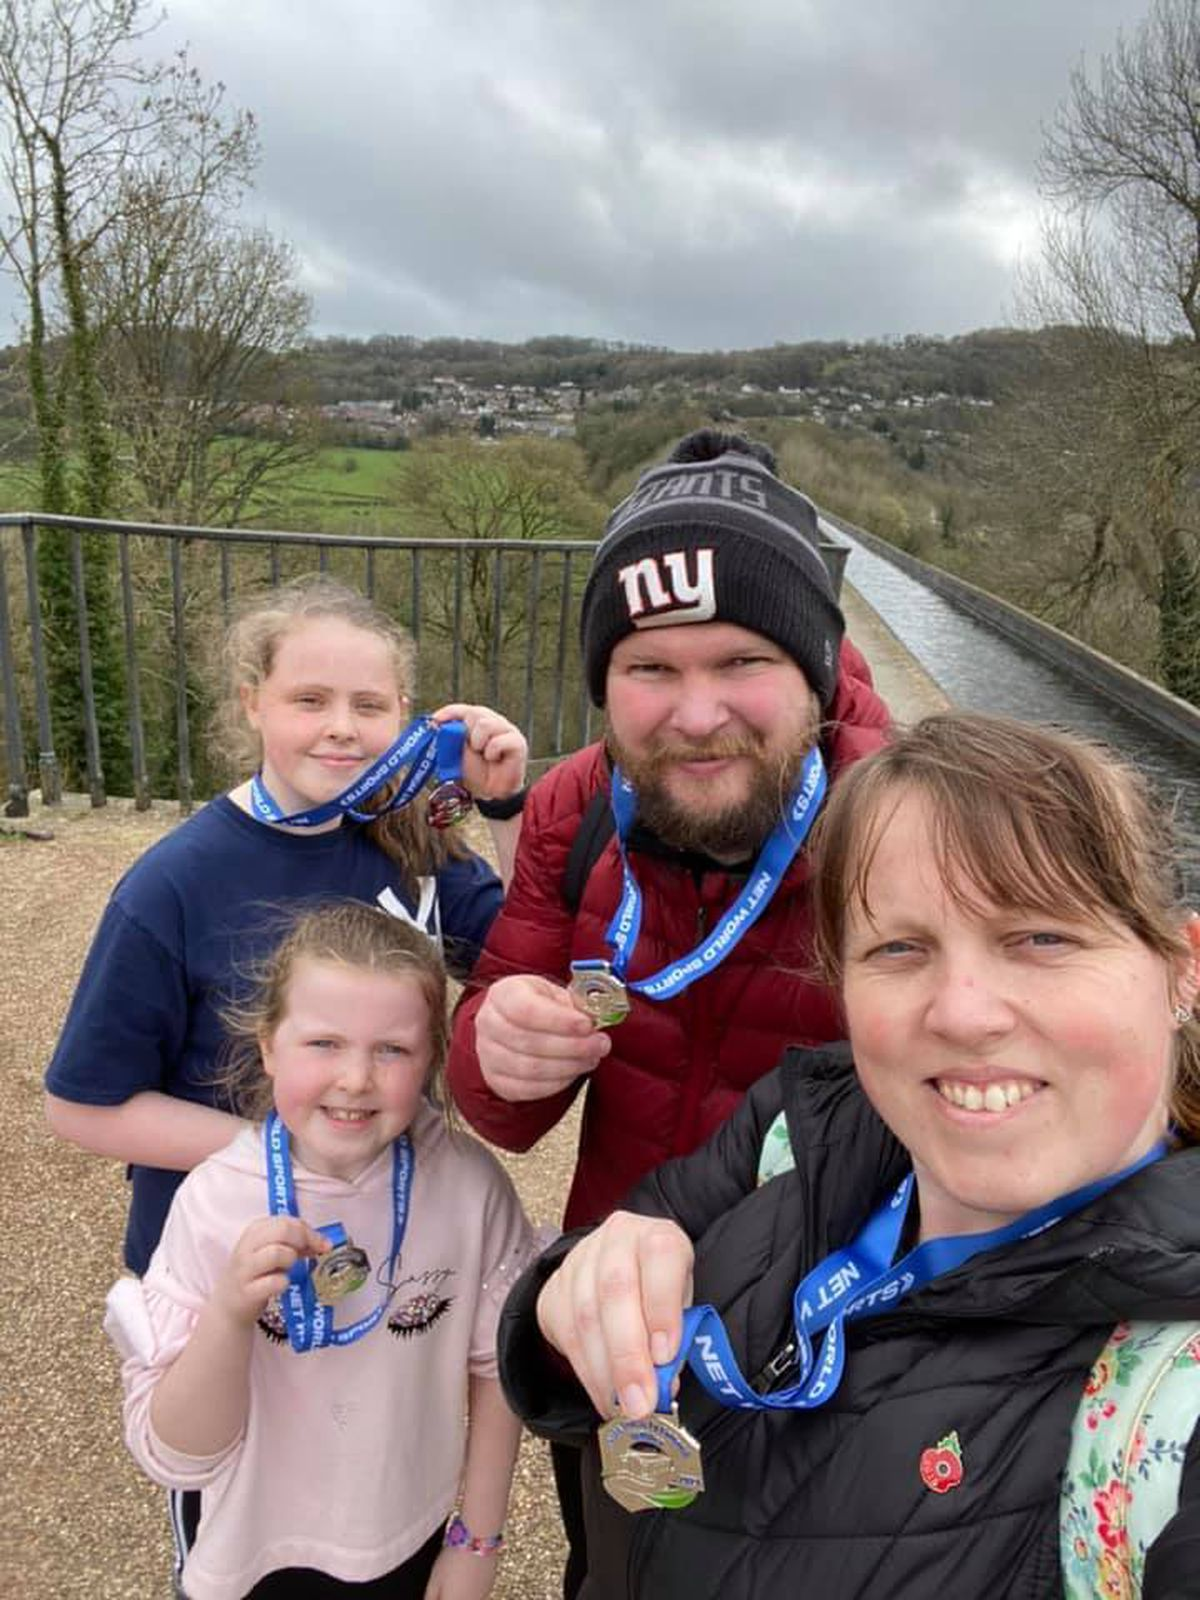 Walkers from across the region took part in the event, helping to raise nearly £30,000